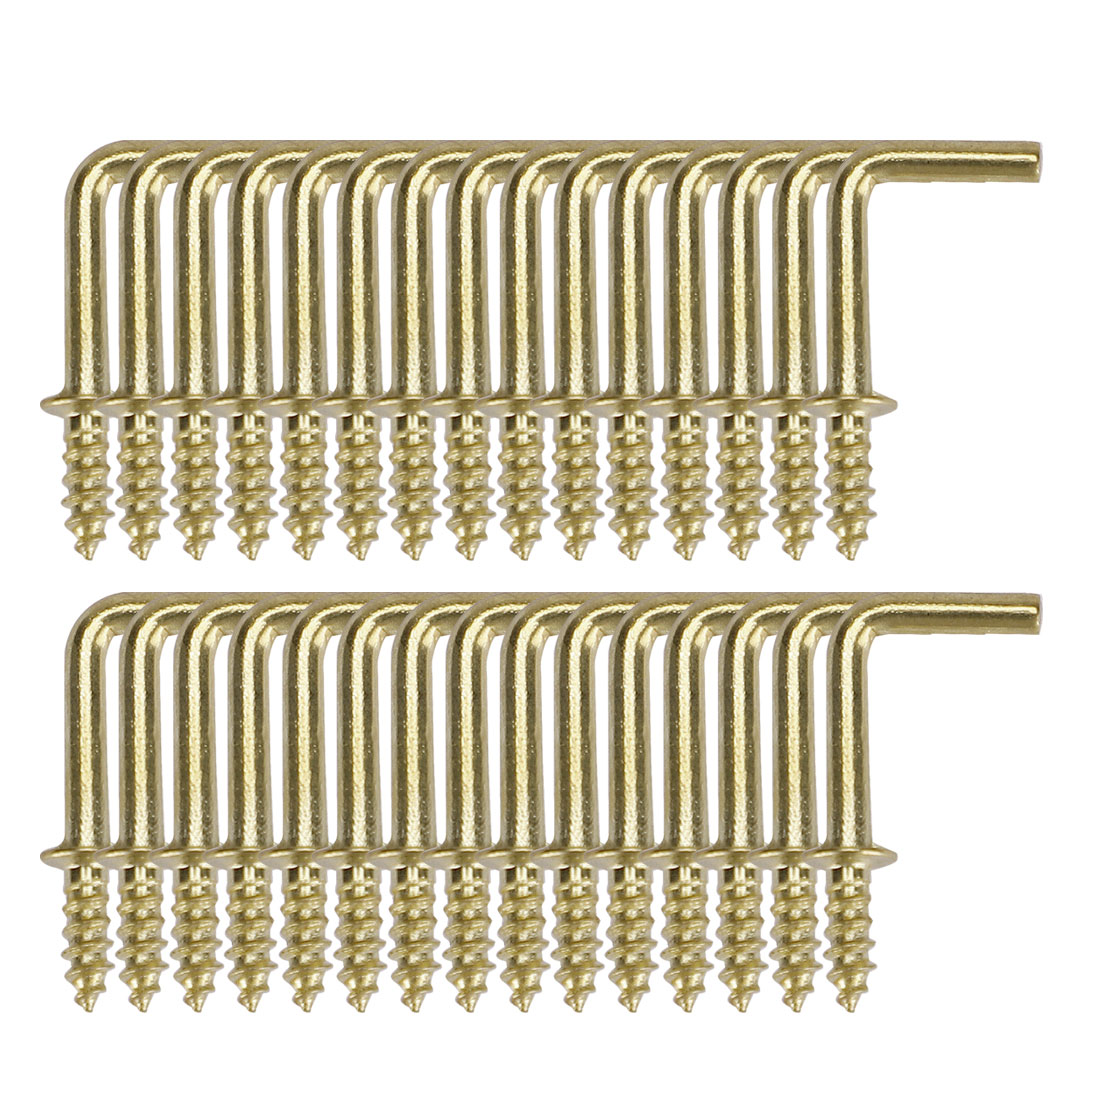 30pcs Cup Square Hook 1/2 Inch Brass Plating Coated Hanger Holder Gold Tone